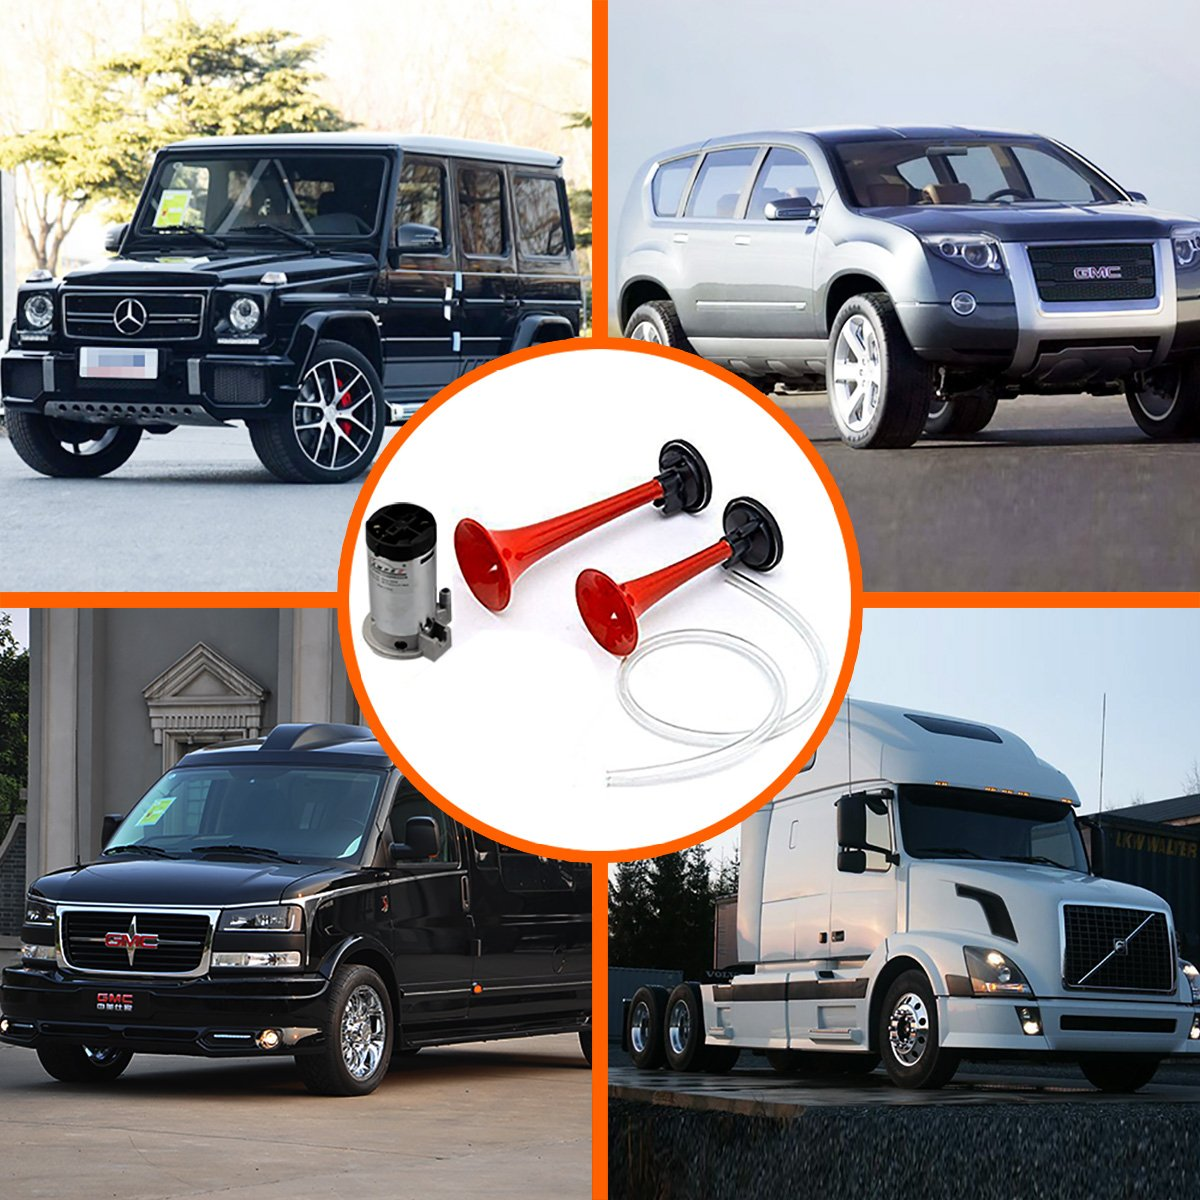 Dual Trumpet Air Horn with Compressor Super Loud Powerful Train Sound Shiny for Any 12V Vehicles Trucks Lorrys Trains Boats Cars Van GAMPRO 12V 135db Air Horn